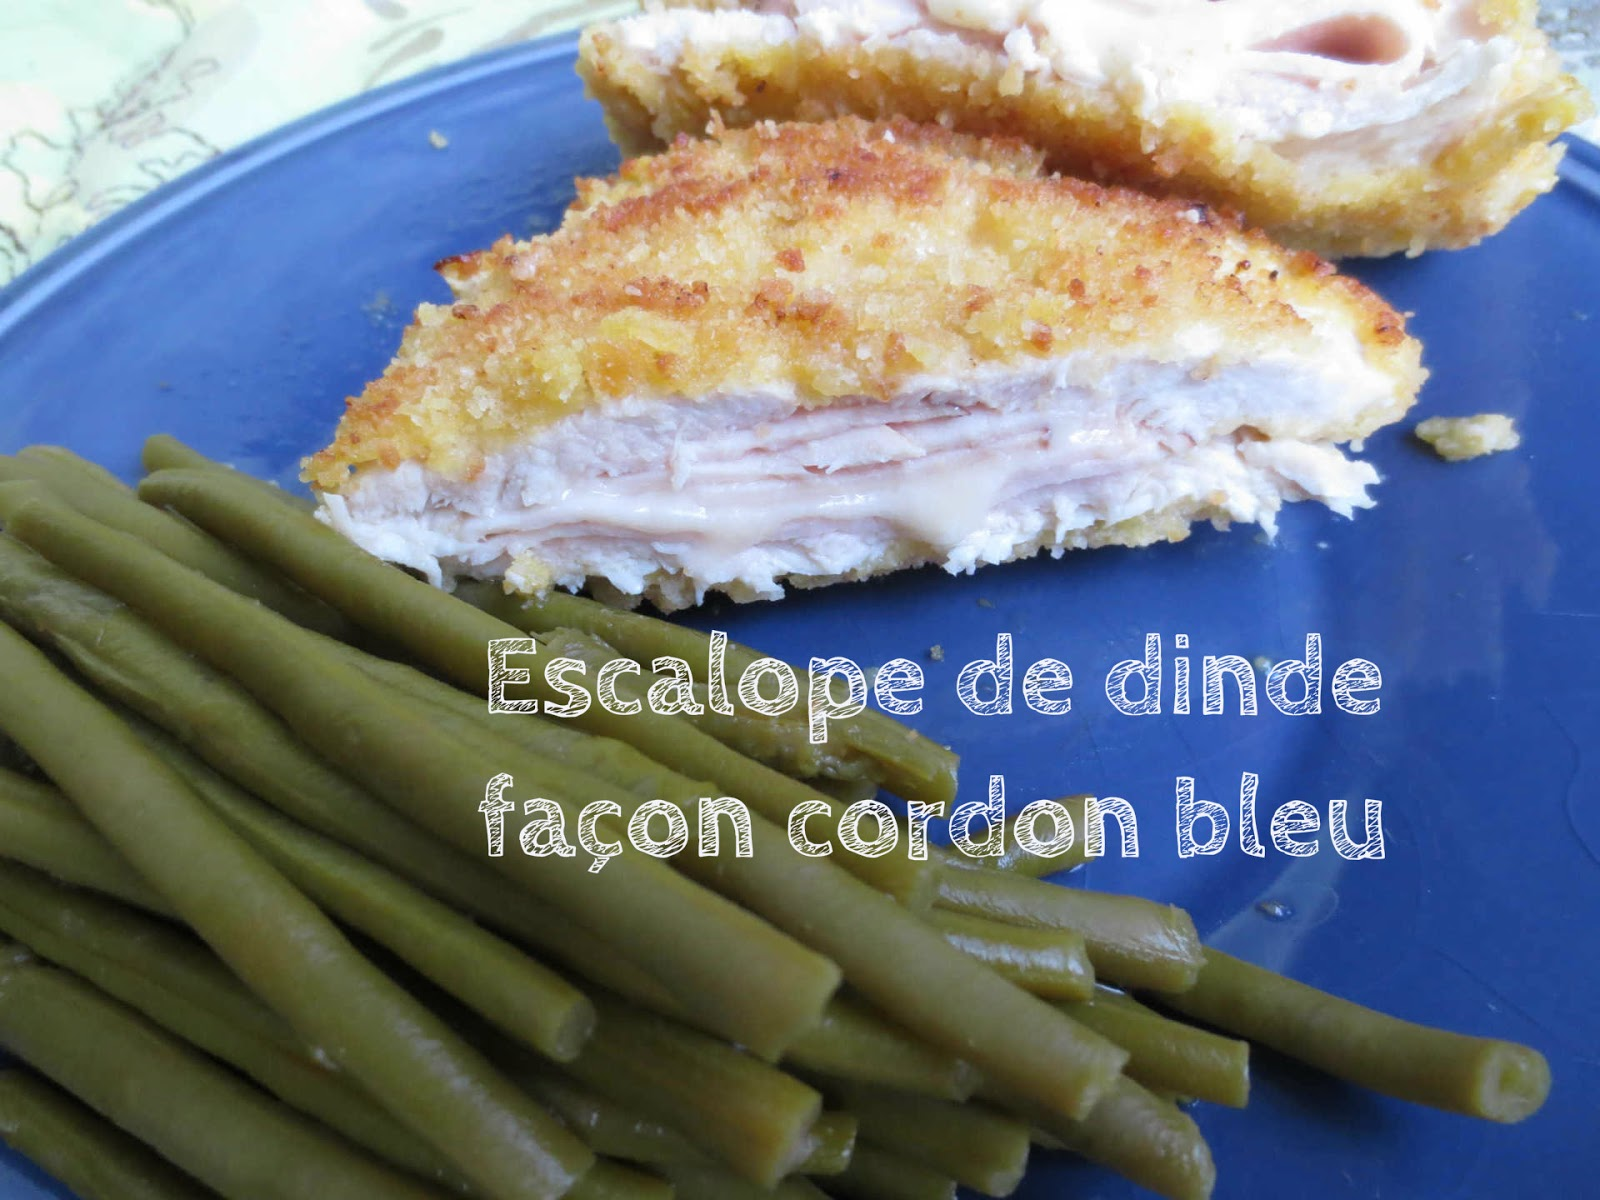 tout simple escalopes fa on cordon bleu blogs de cuisine. Black Bedroom Furniture Sets. Home Design Ideas